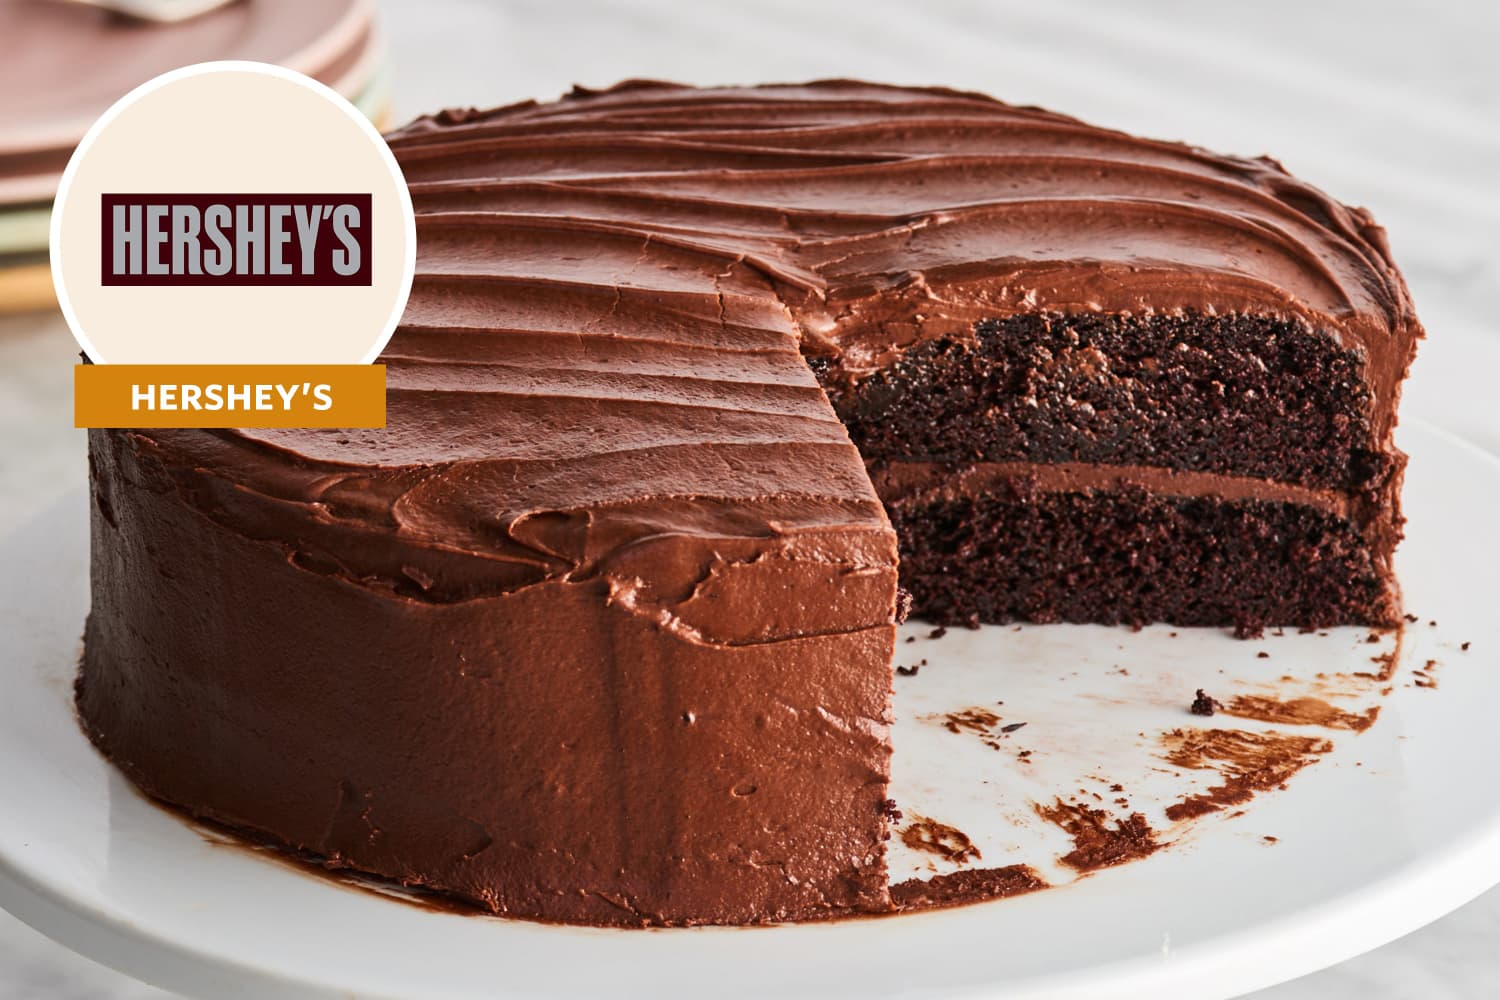 We Tried Hershey's Back-of-the-Box Chocolate Cake Recipe and Did Not Expect These Results